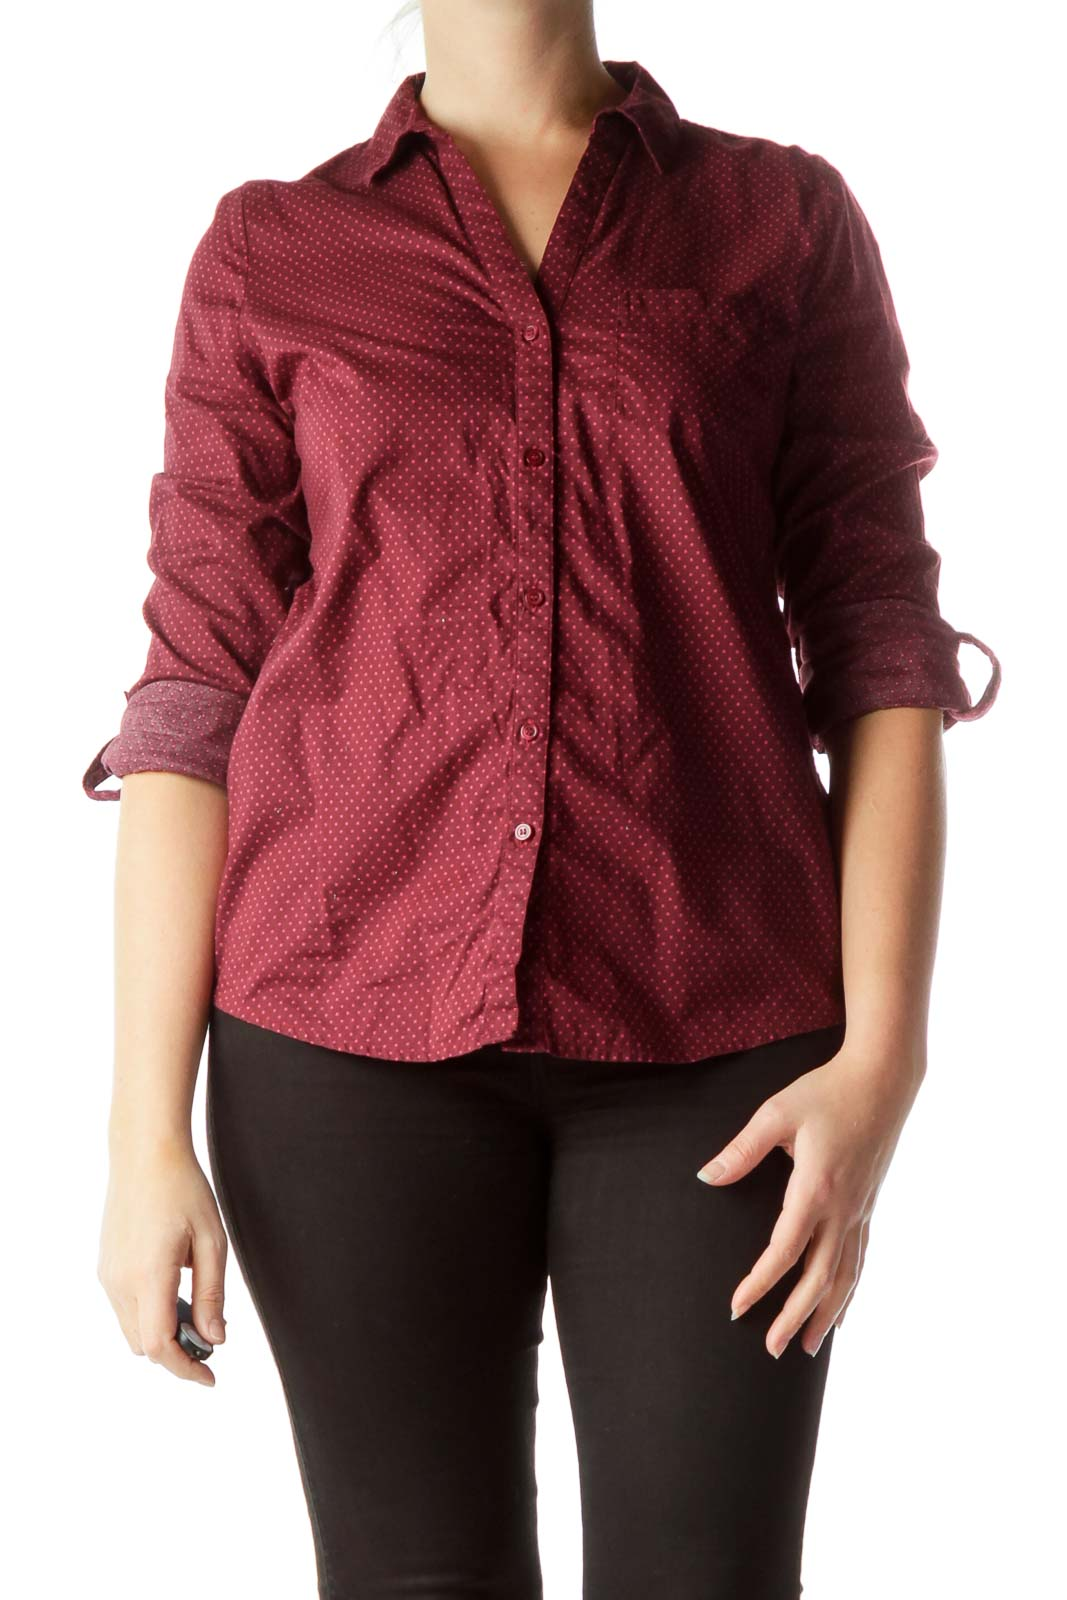 Burgundy Polka-Dot 100% Cotton Shirt